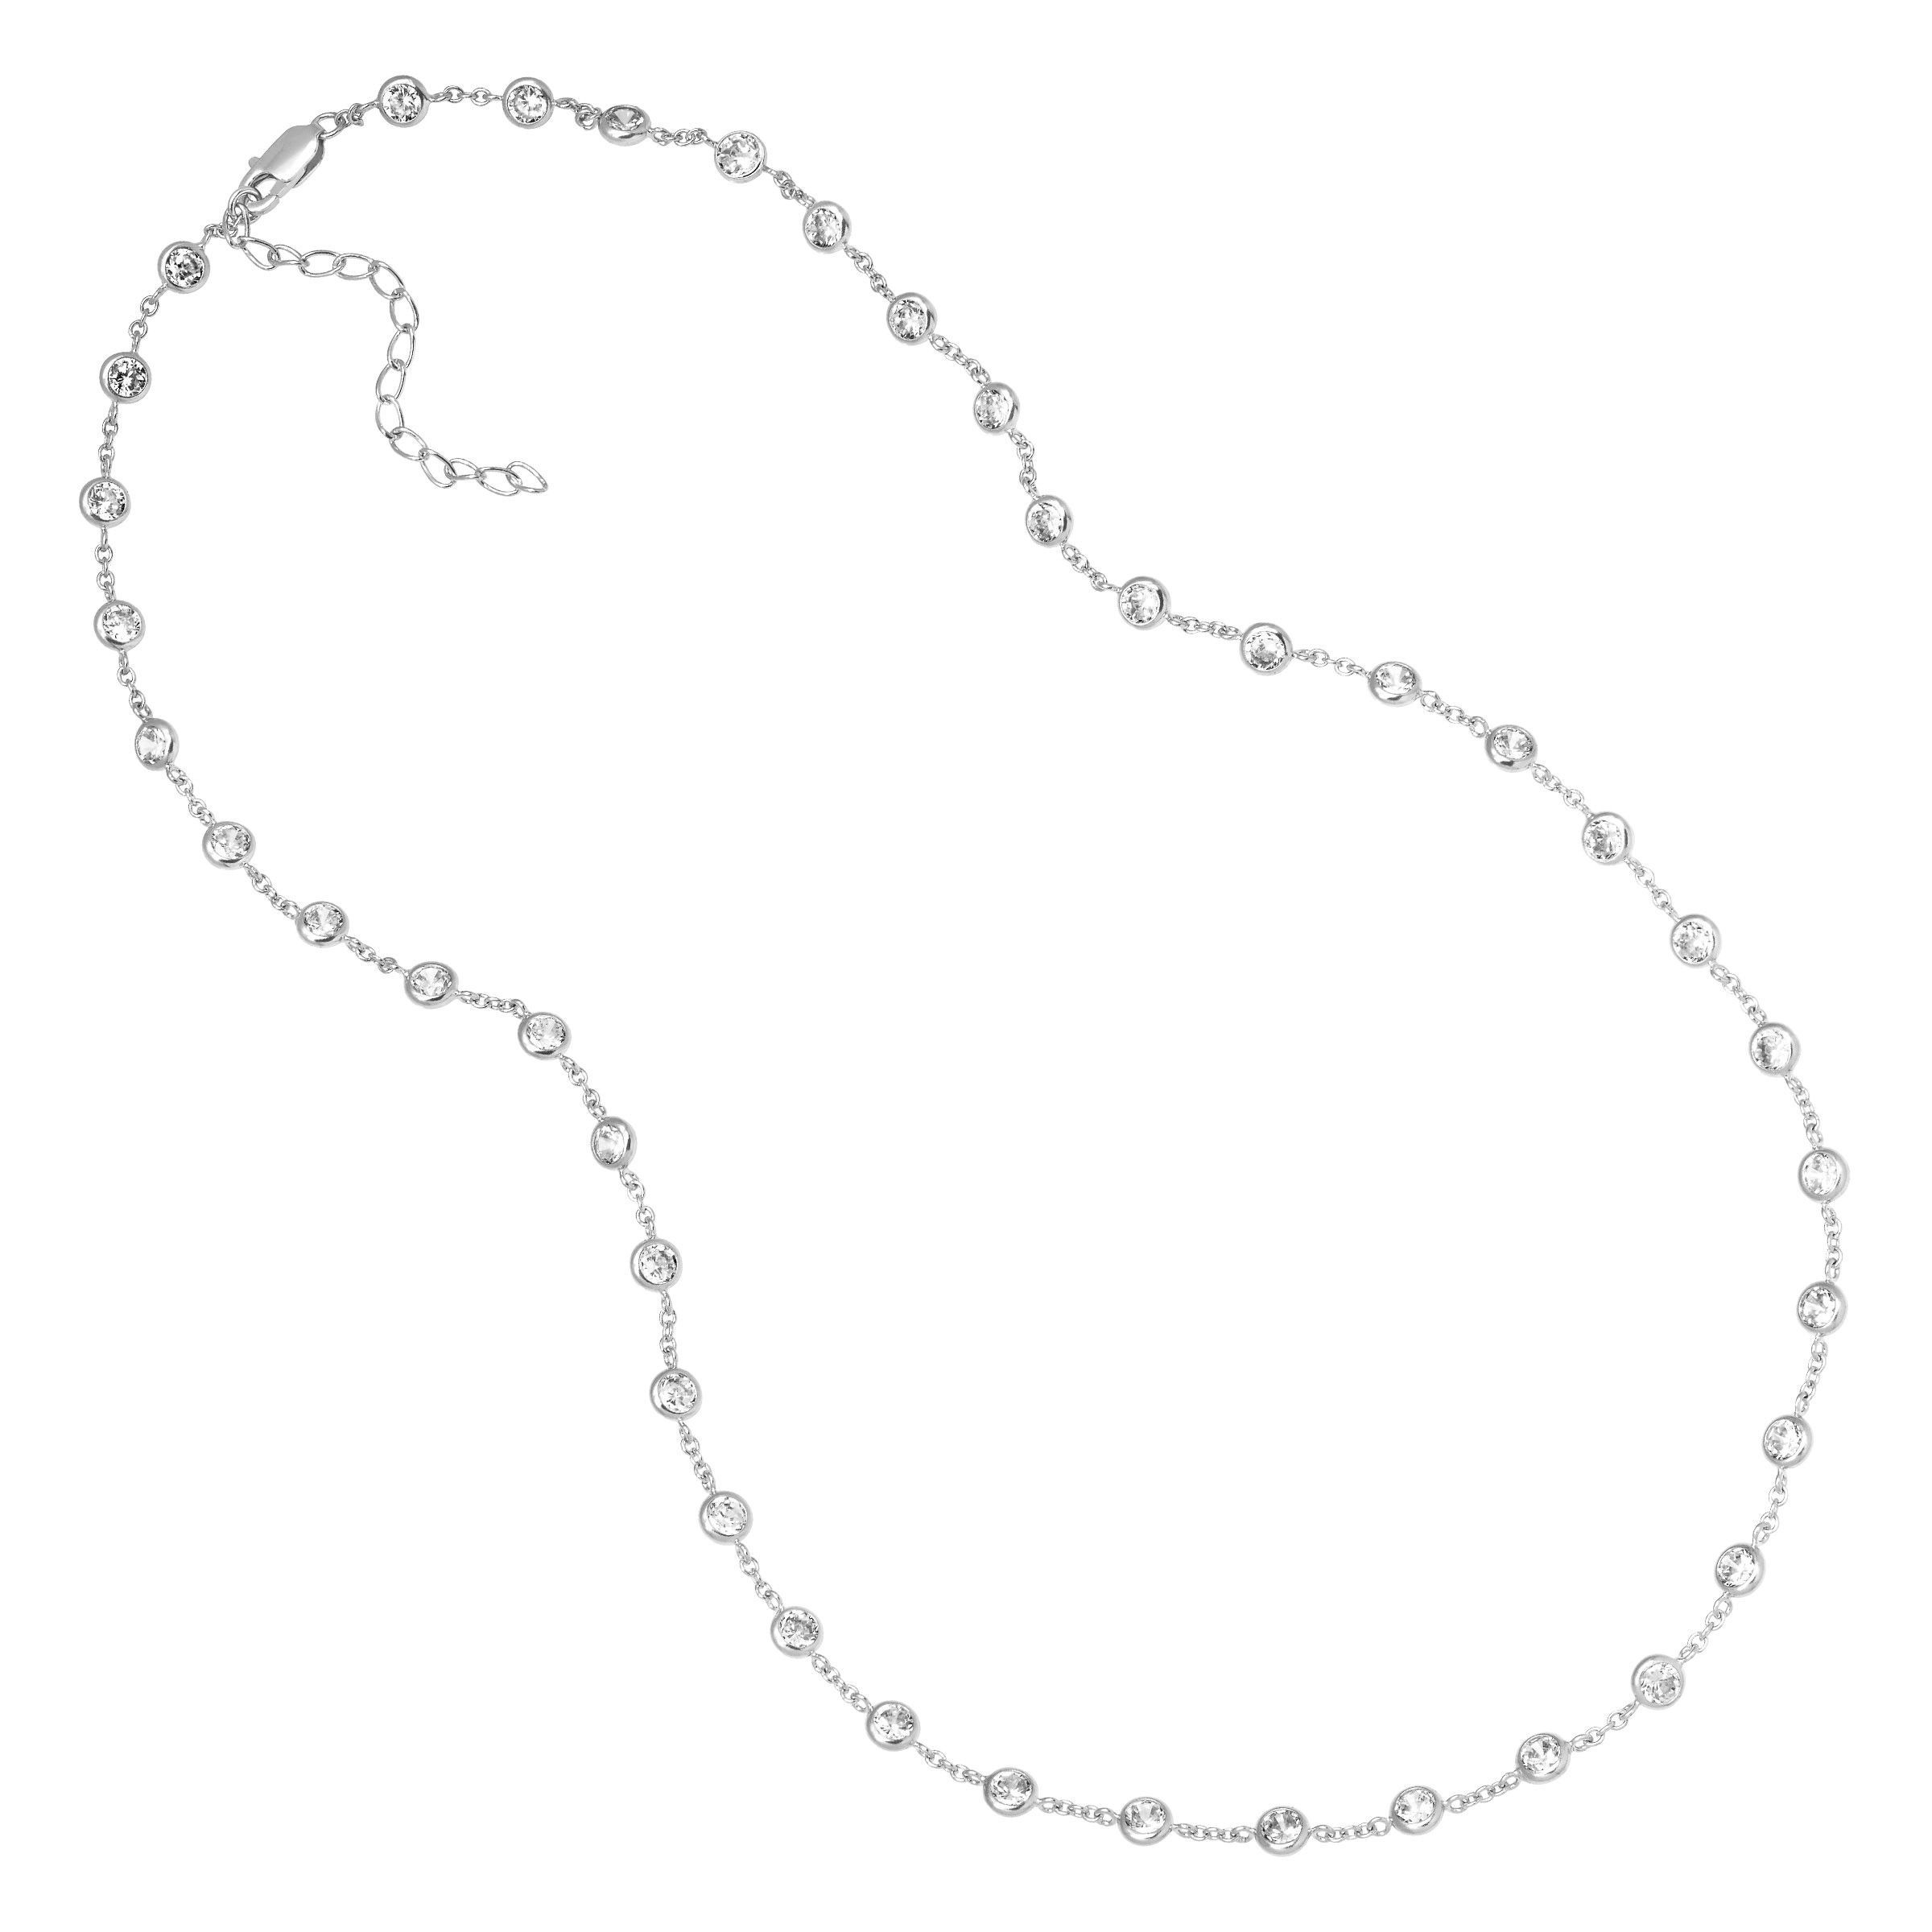 52e0e4ecd37fd Details about Cubic Zirconia Station Necklace in Rhodium-Plated Sterling  Silver, 18